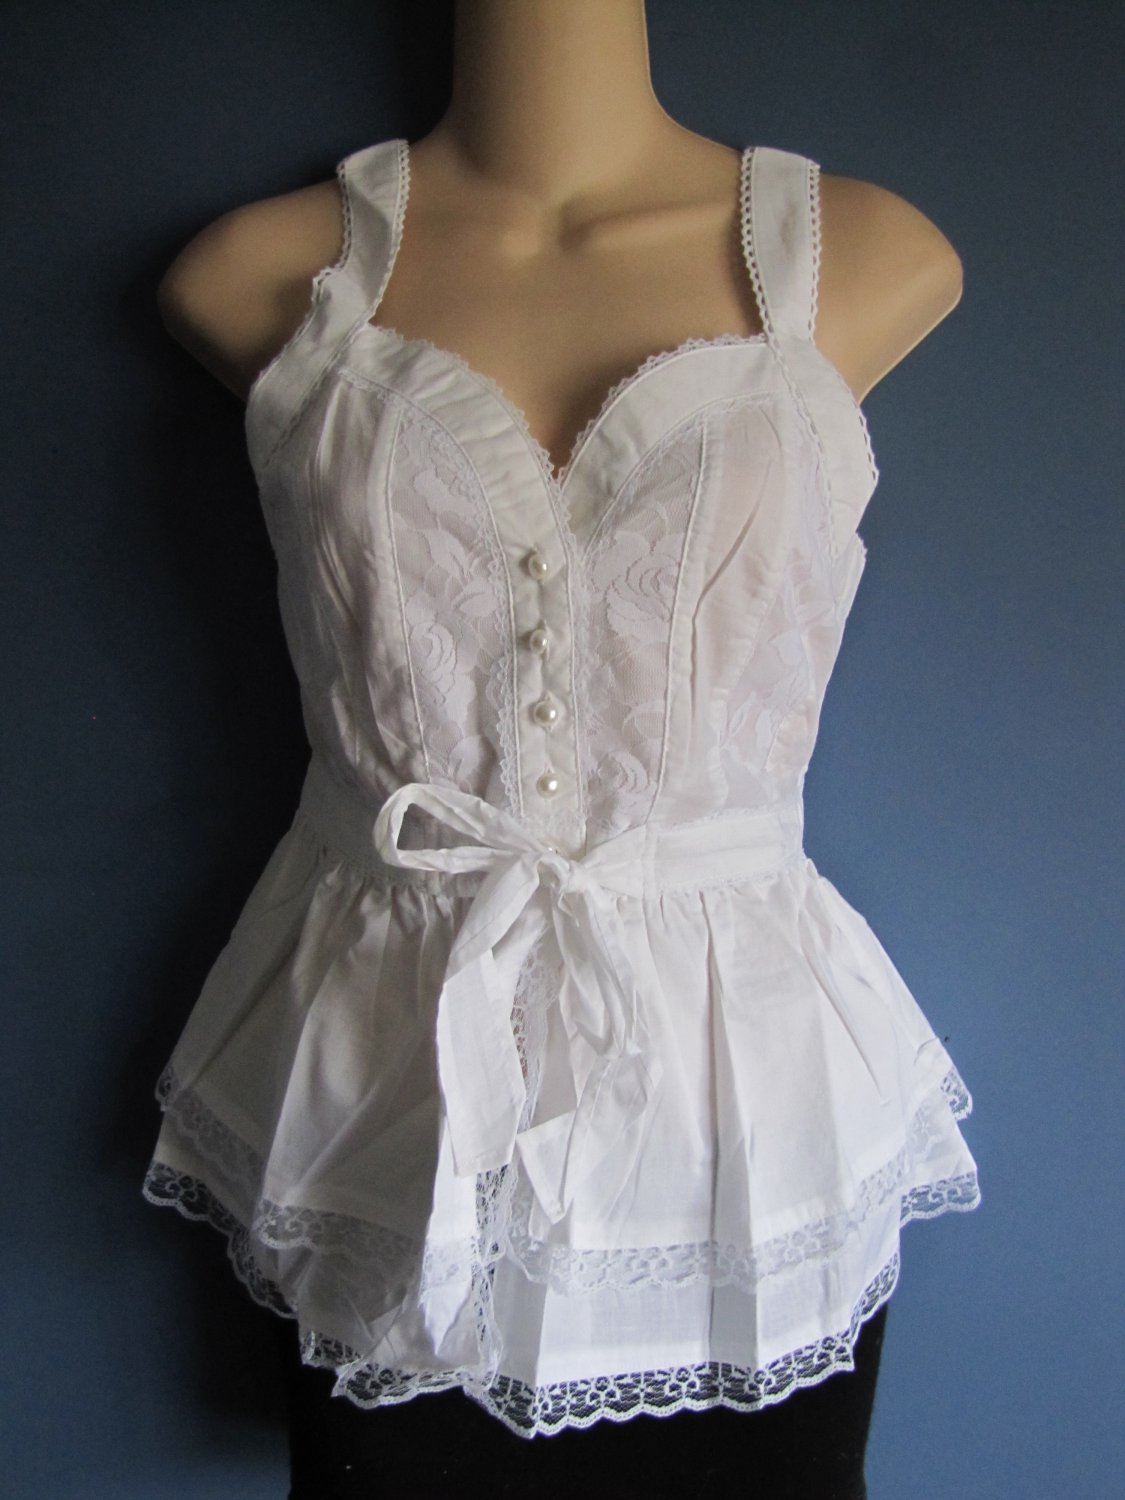 WHITE CORSET/BUSTIER STYLE SHIRT LACE DETAIL SWETHEART NECKLINE SIZE SMALL